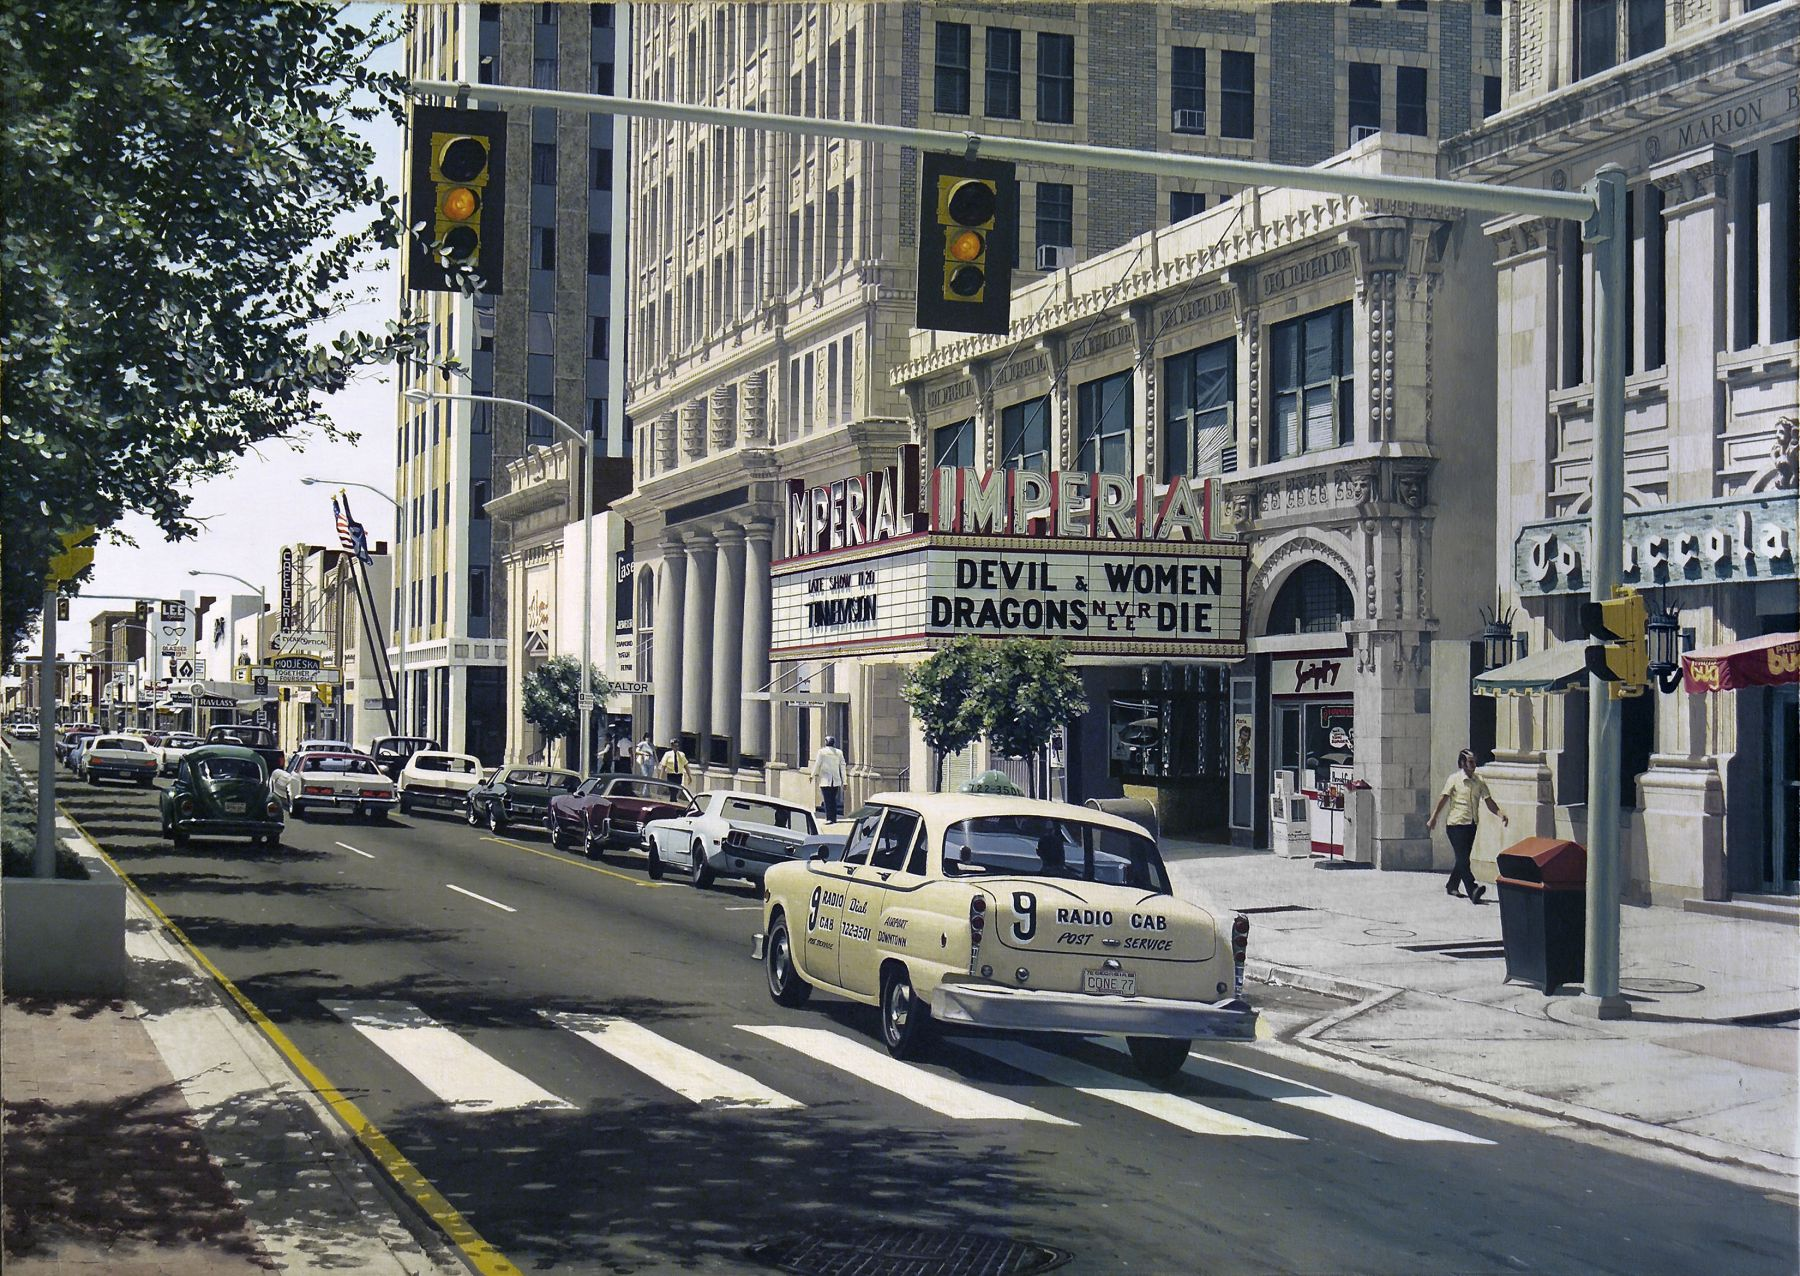 Davis Cone, Imperial (SOLD), 1977, acrylic on canvas, 34 x 48 inches